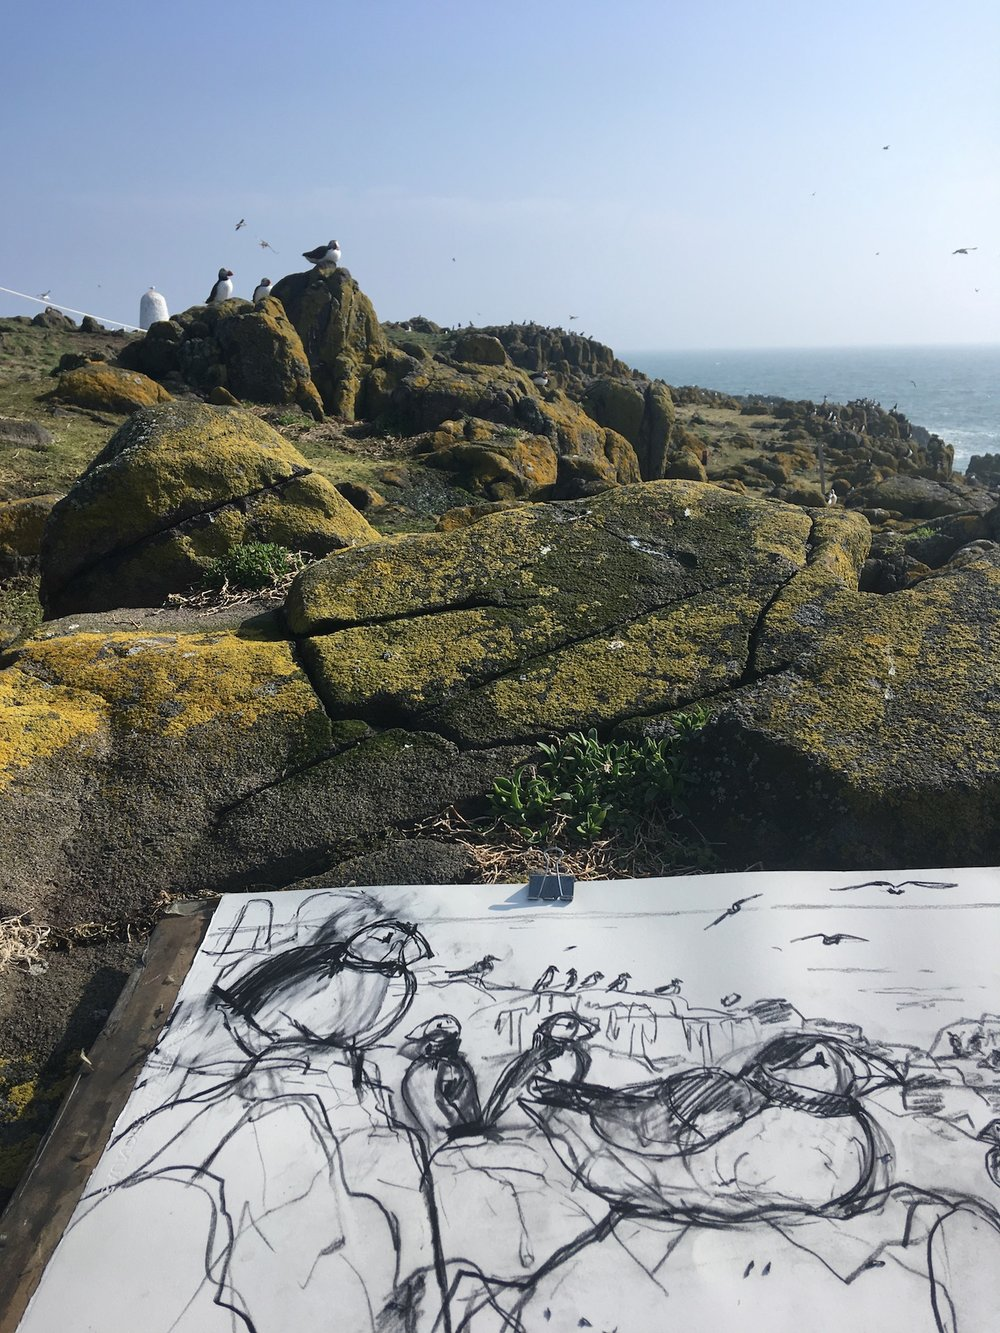 After a few drawings in my sketch book, I was ready to make a sustained piece of work on site. I usually feel quite tense as I start this process, and am keen to work quickly whilst my subject matter is still there! However this drawing was such a pleasure to make. I was still reeling from the total wonder of sitting so close to puffins that had arrived on the island just hours before.